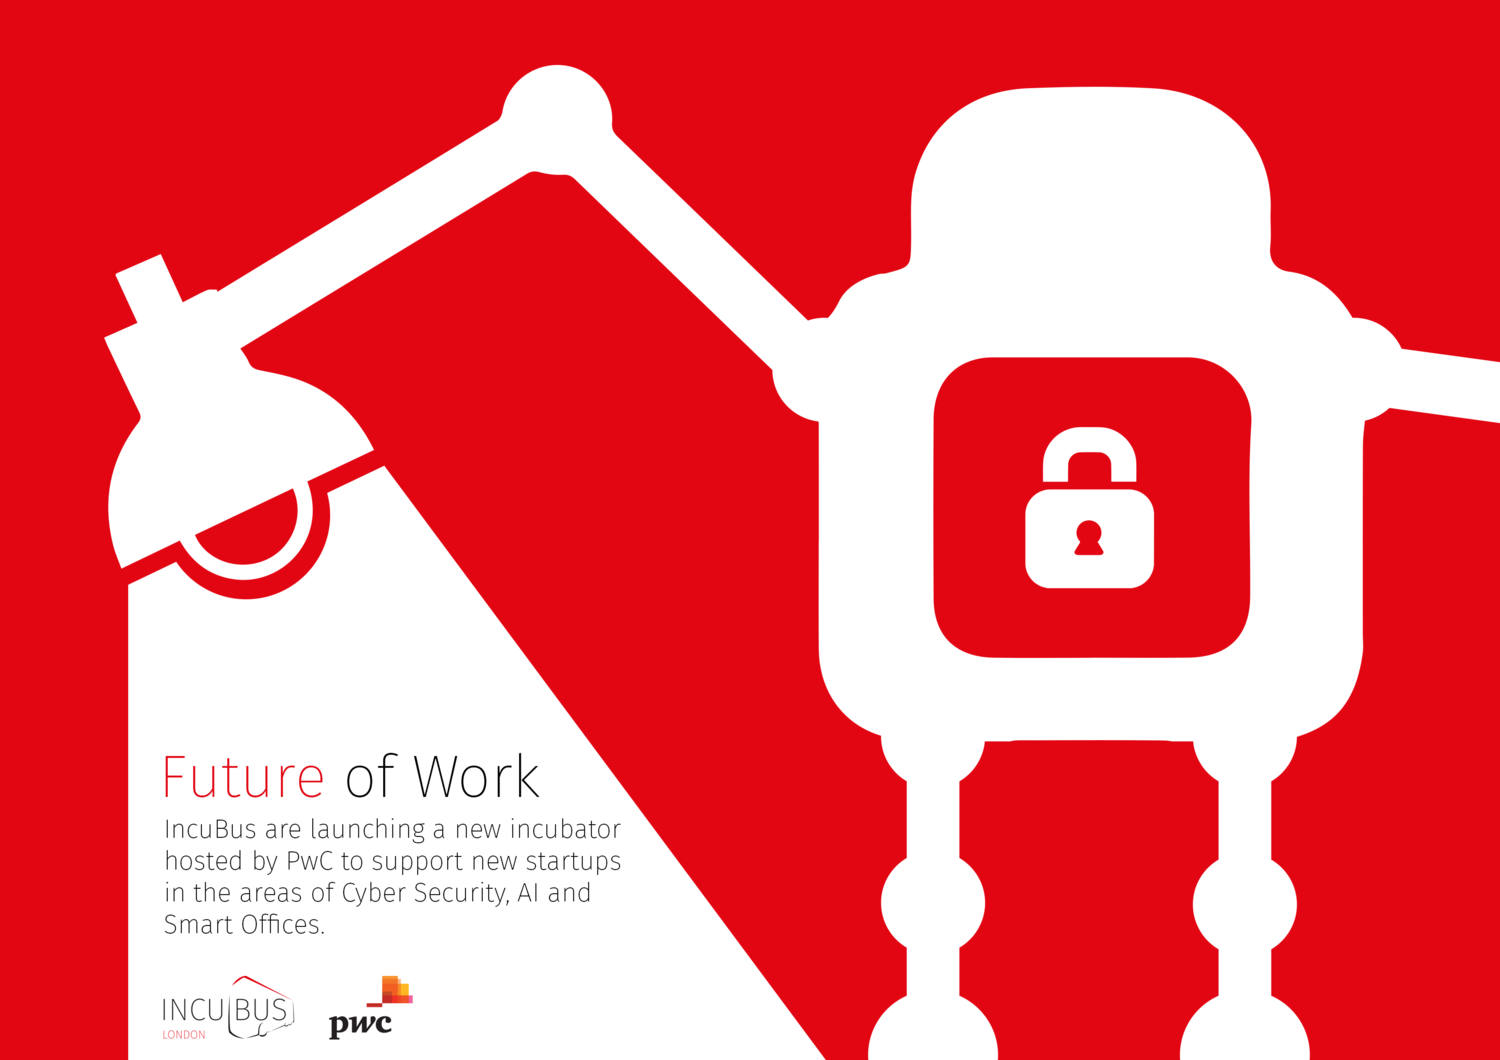 The IncuBus Future of Work